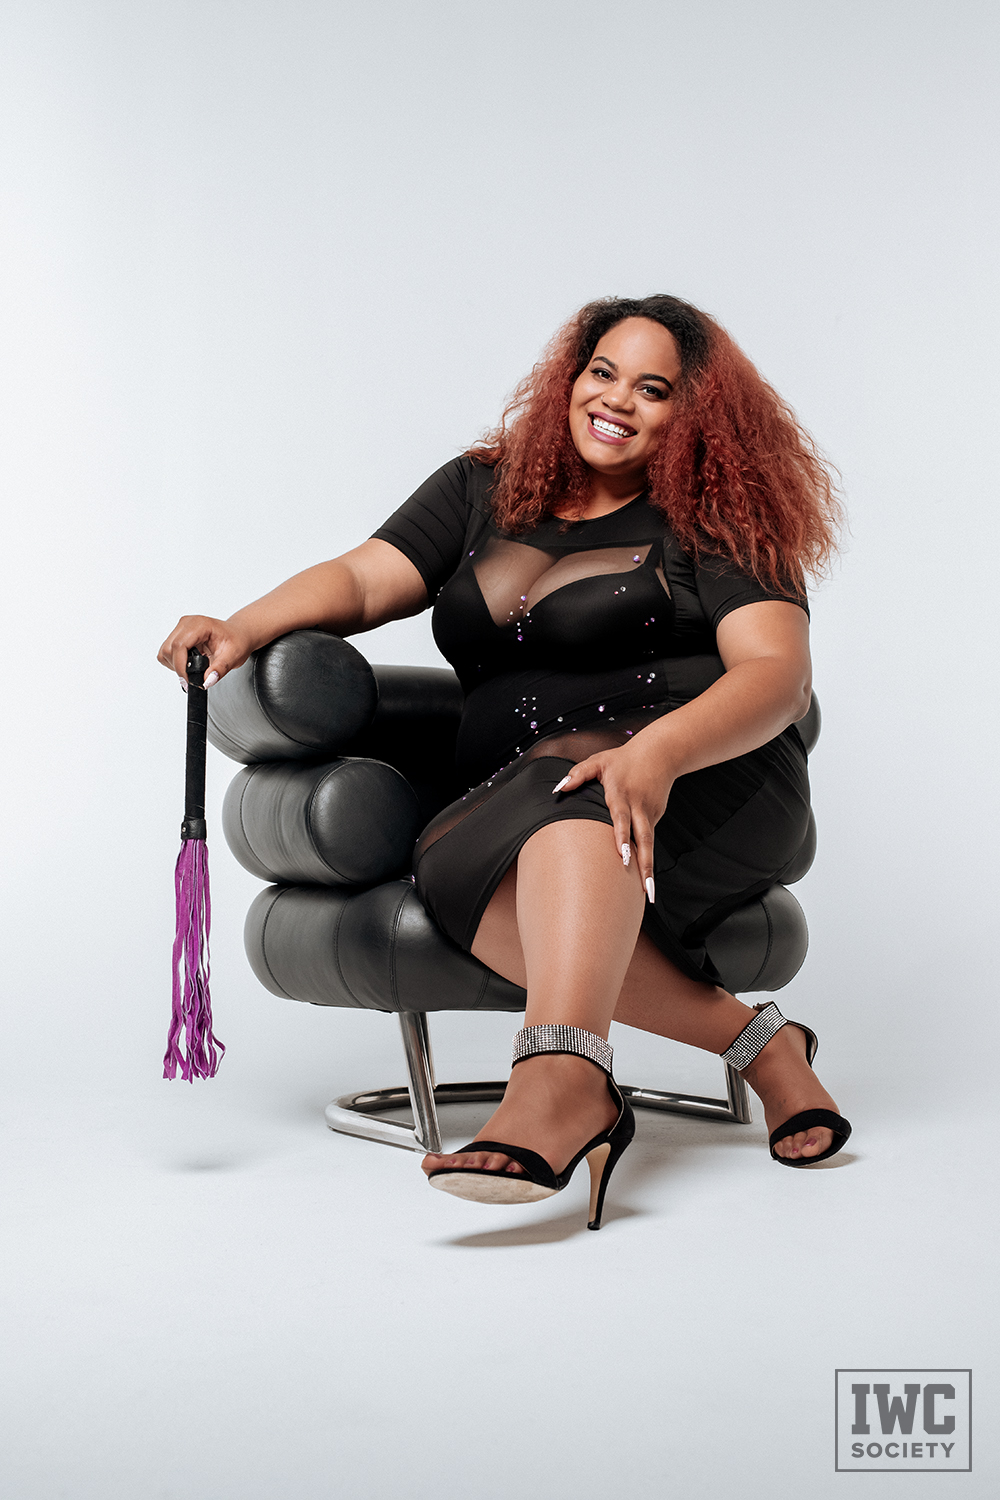 black dominatrix Ms Charmness sitting on a black chair holding a purple flogger with a gorgeous smile